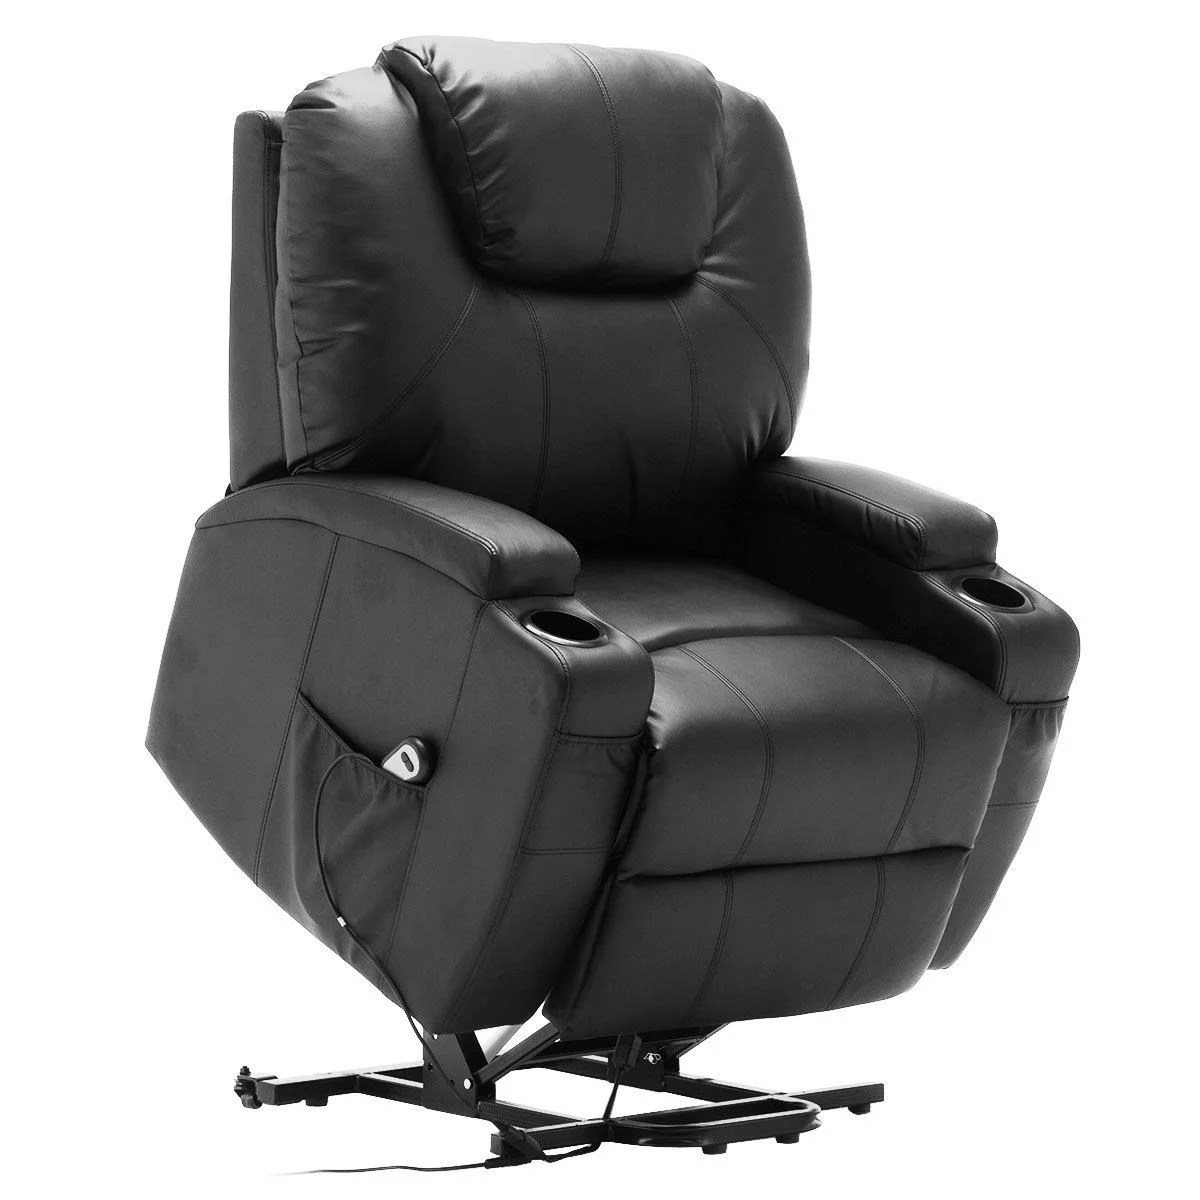 Scansit Sessel Lounge Recliner Chair Dimarlinperez